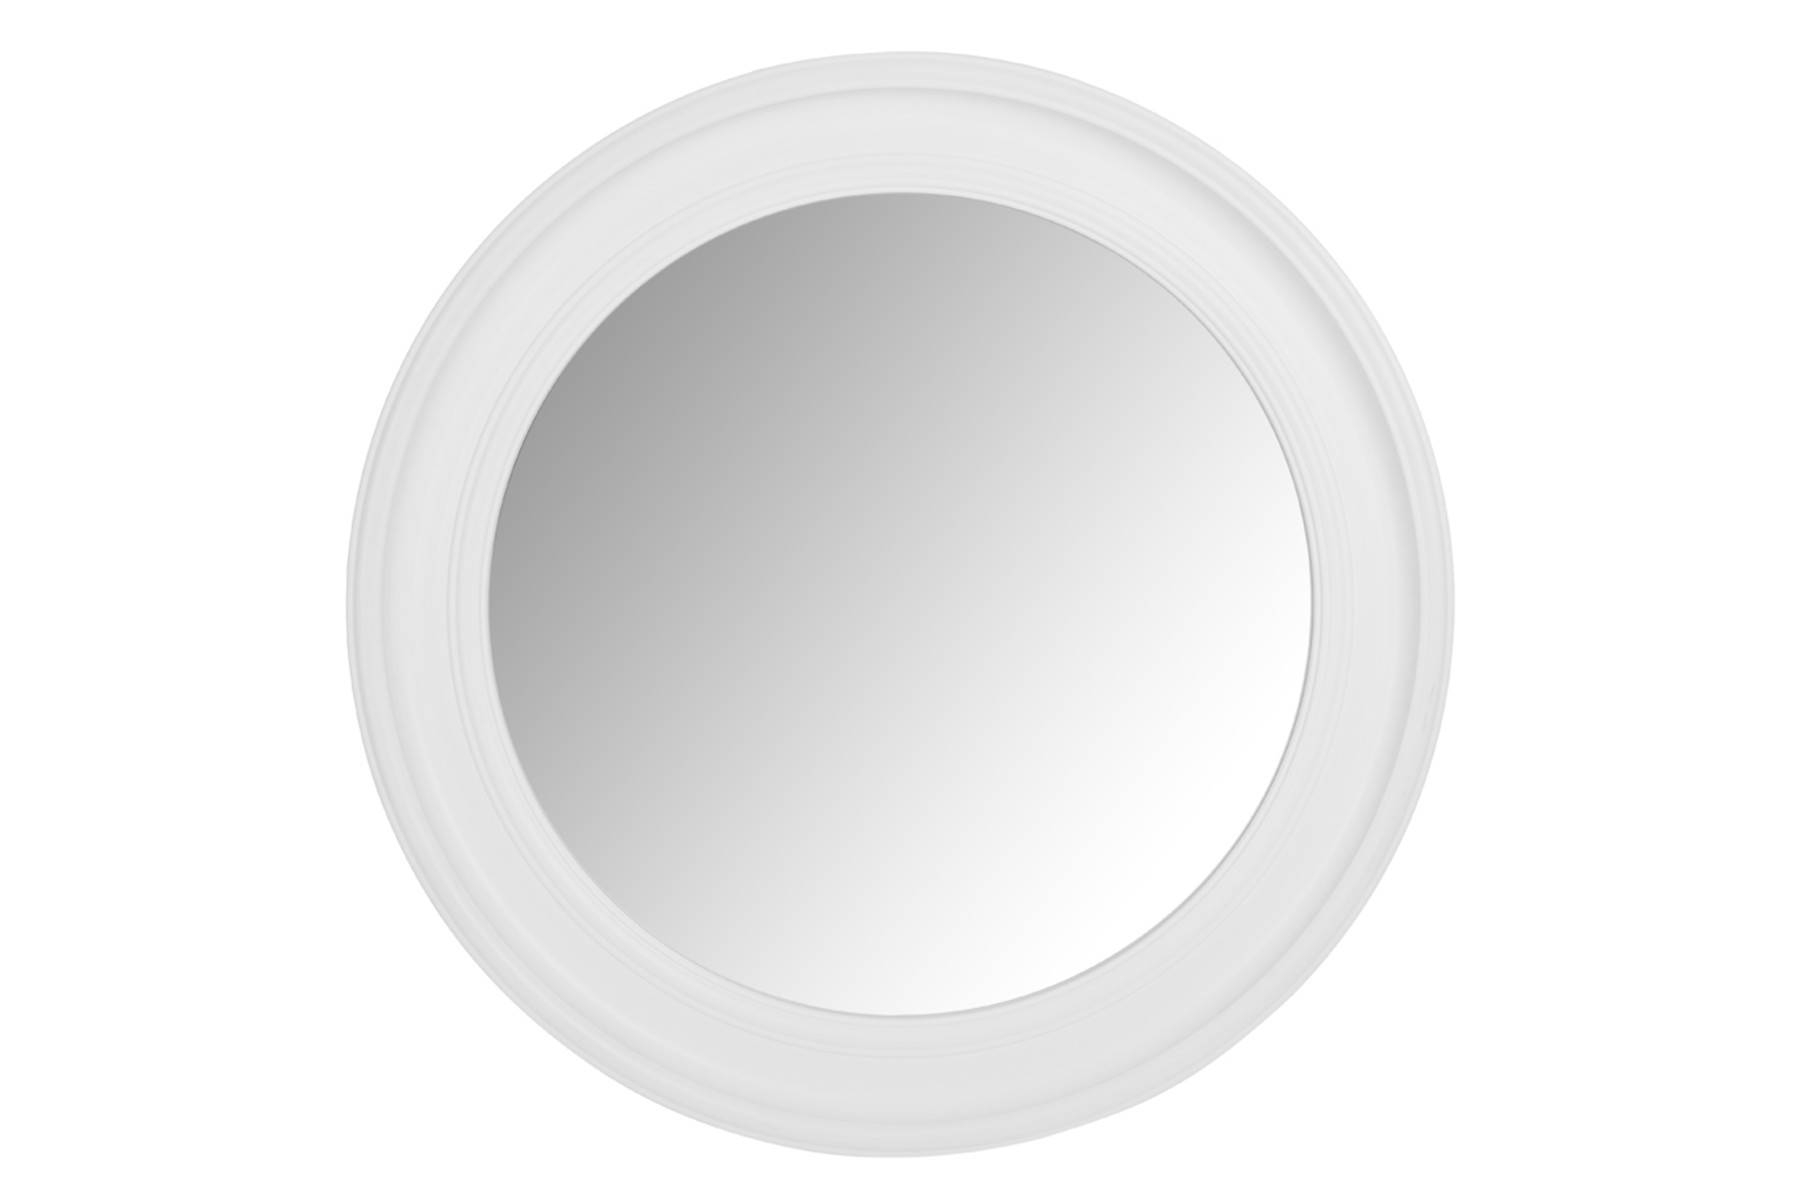 Made To Order Mirrors | Made To Order Mirror | Laura Ashley With Regard To Round White Mirrors (View 1 of 15)